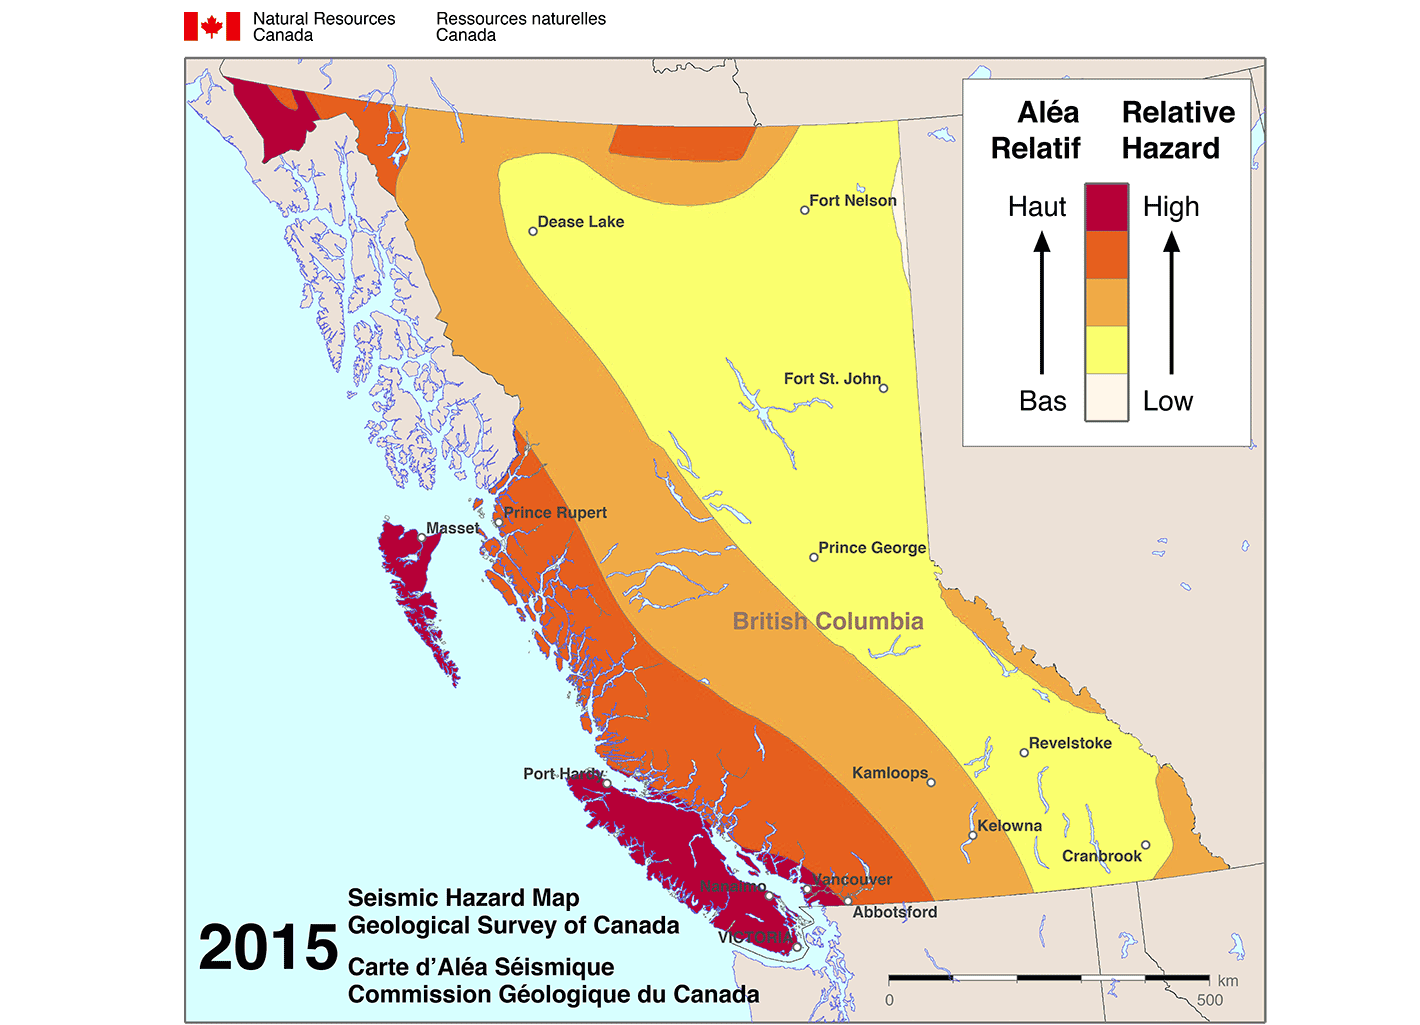 2015 Seismic Hazard Map - Geological survey of Canada